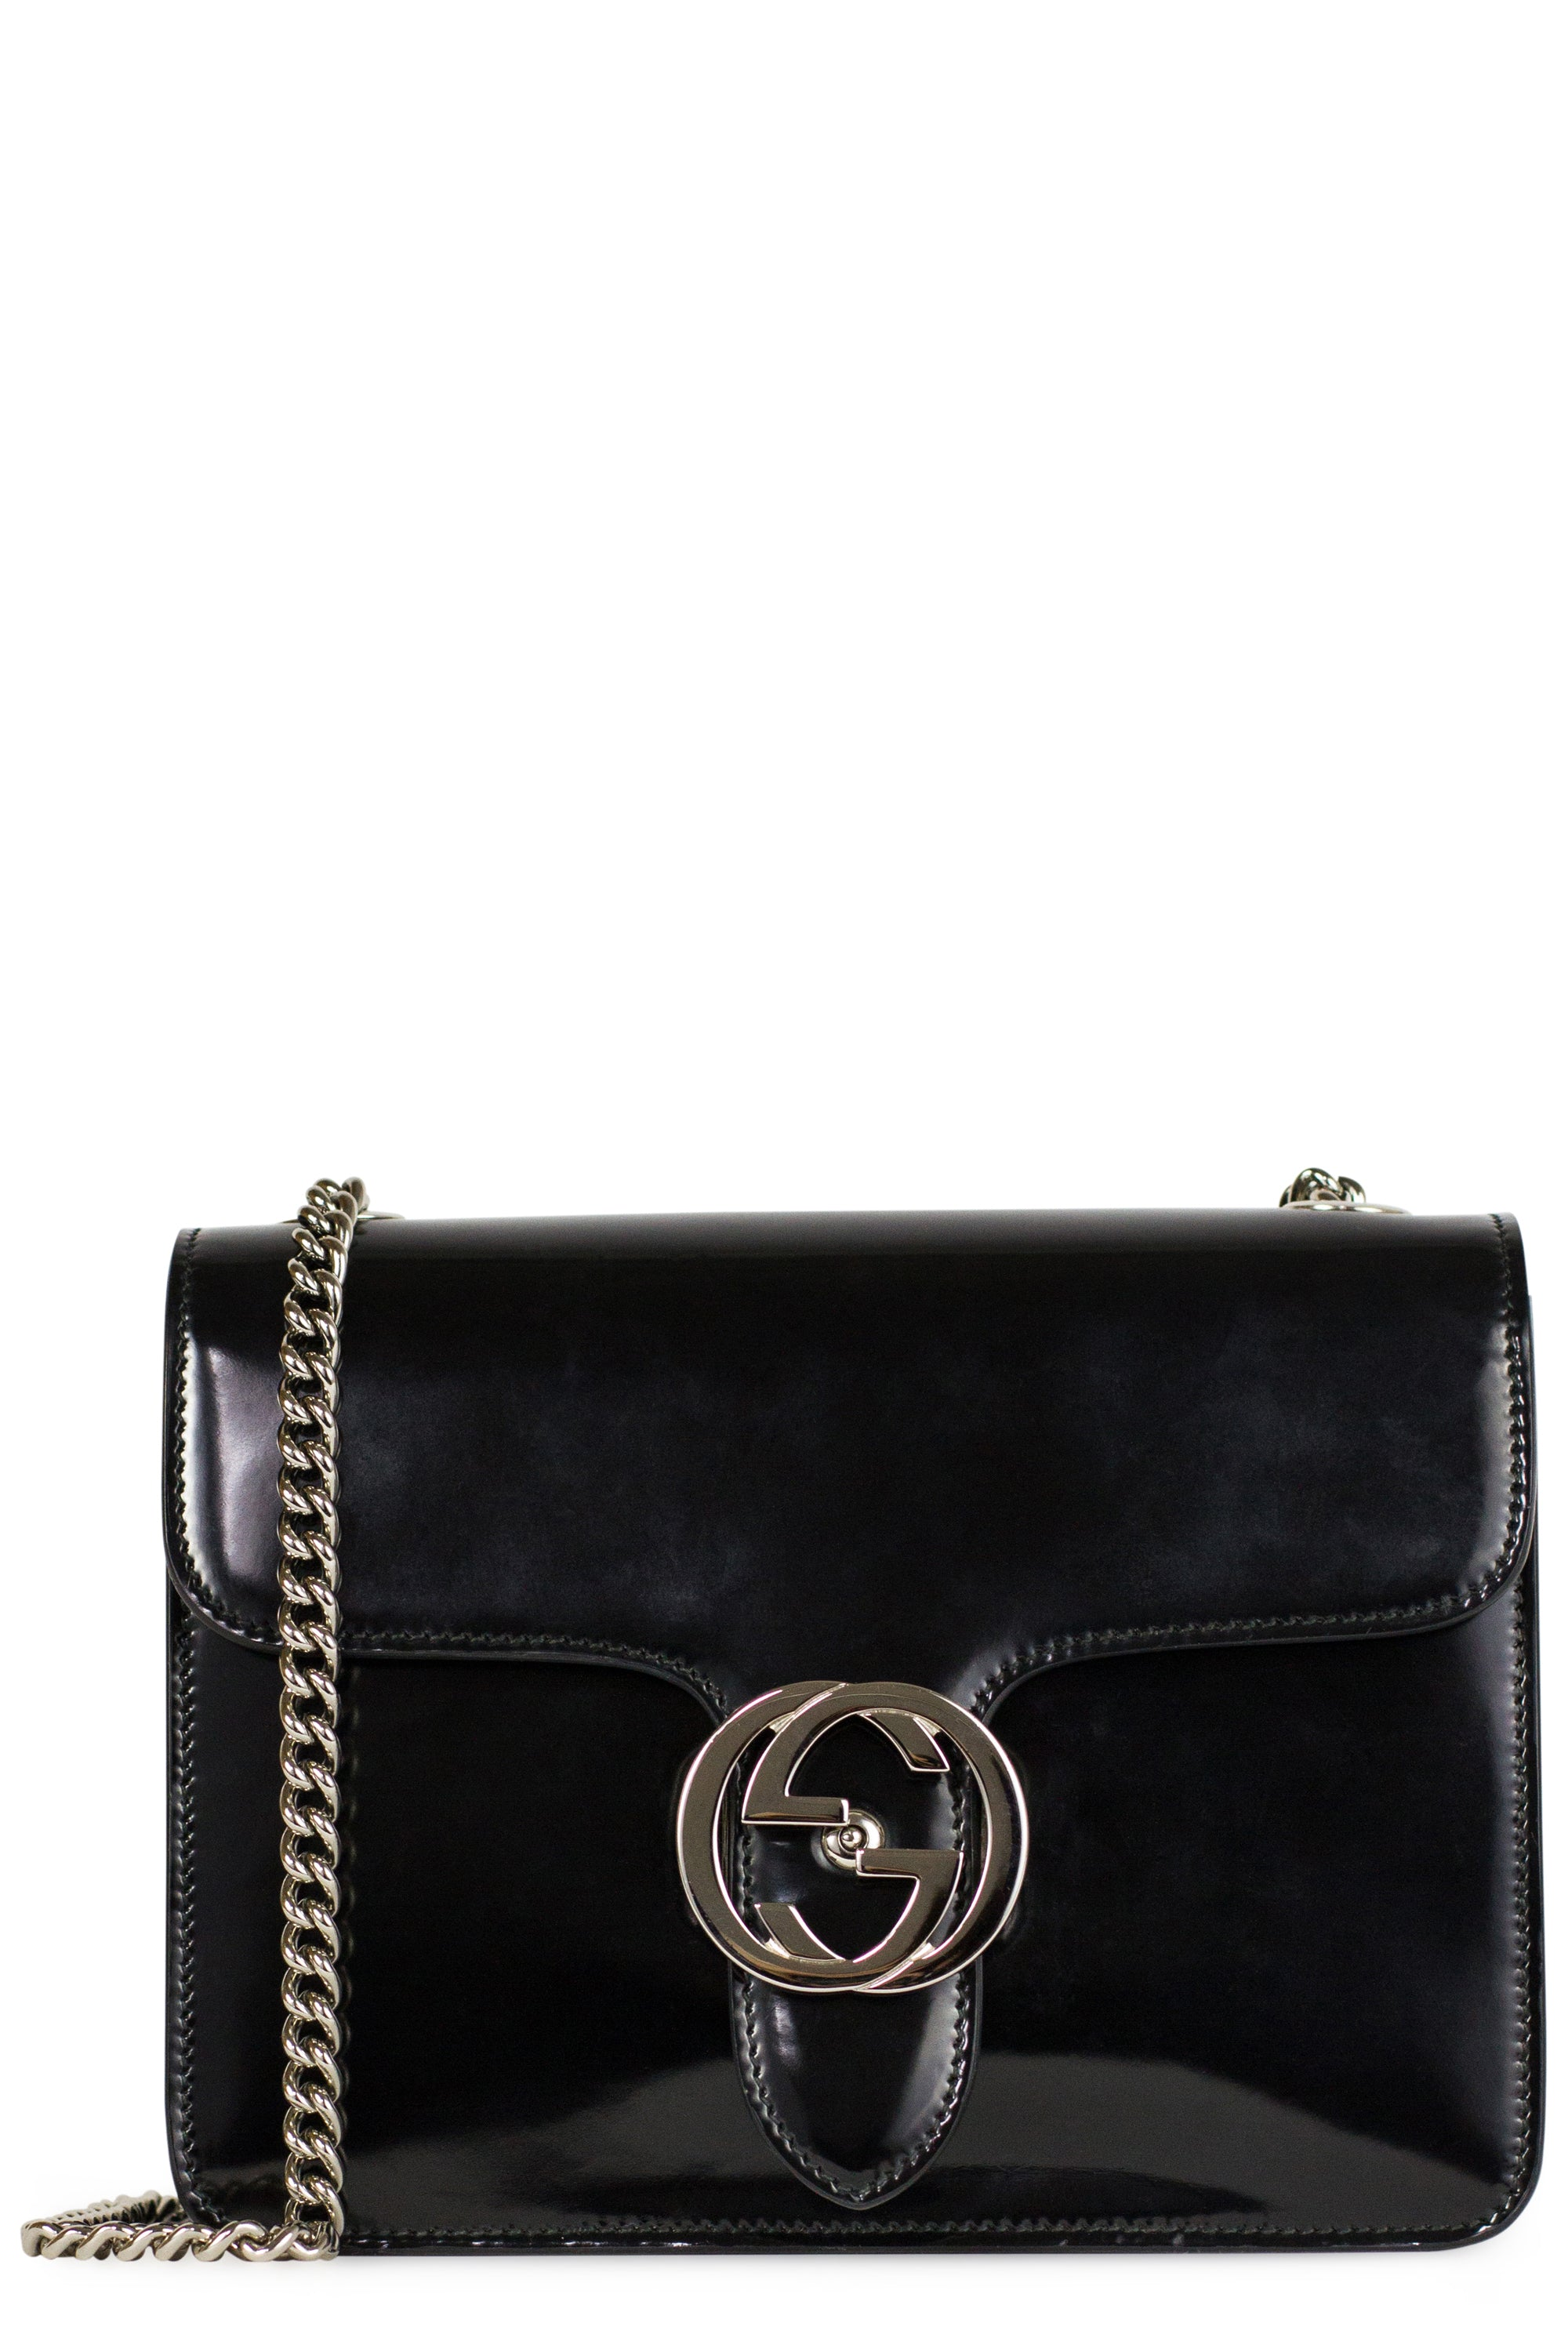 Gucci GG Interlocking Small Bag Silver Chain Black Patent Leather Frontansicht